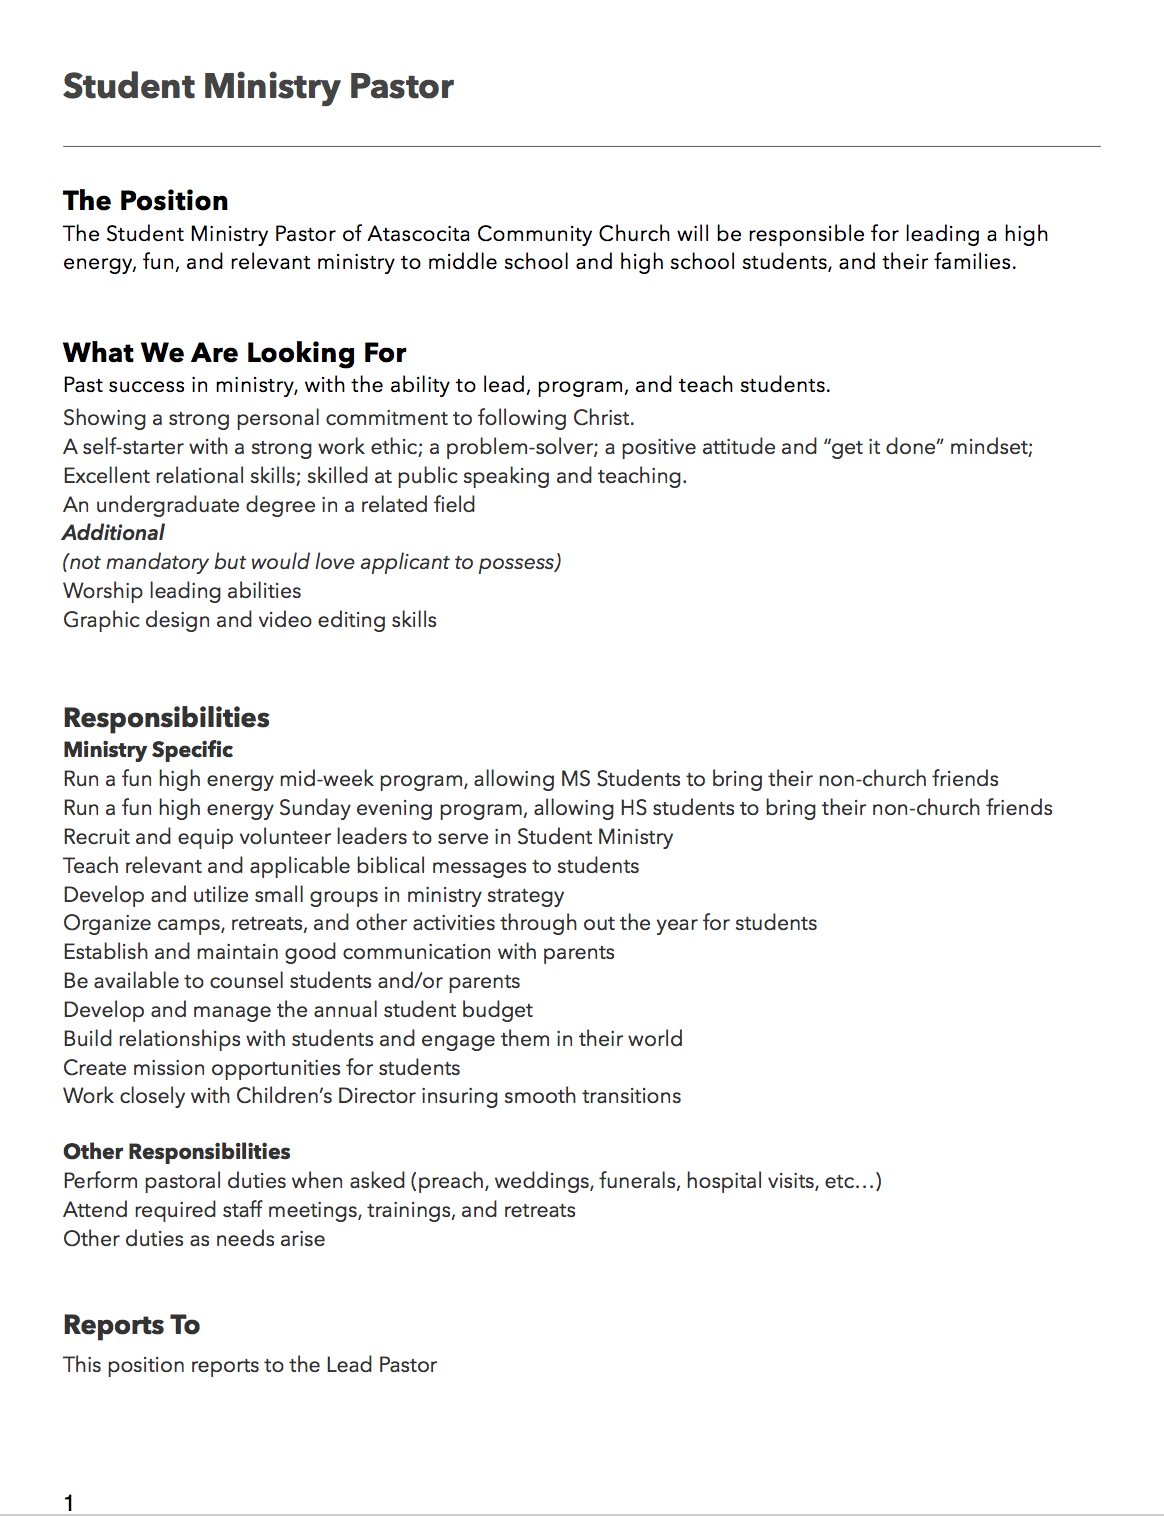 ACC Student Ministry Pastor Job Description